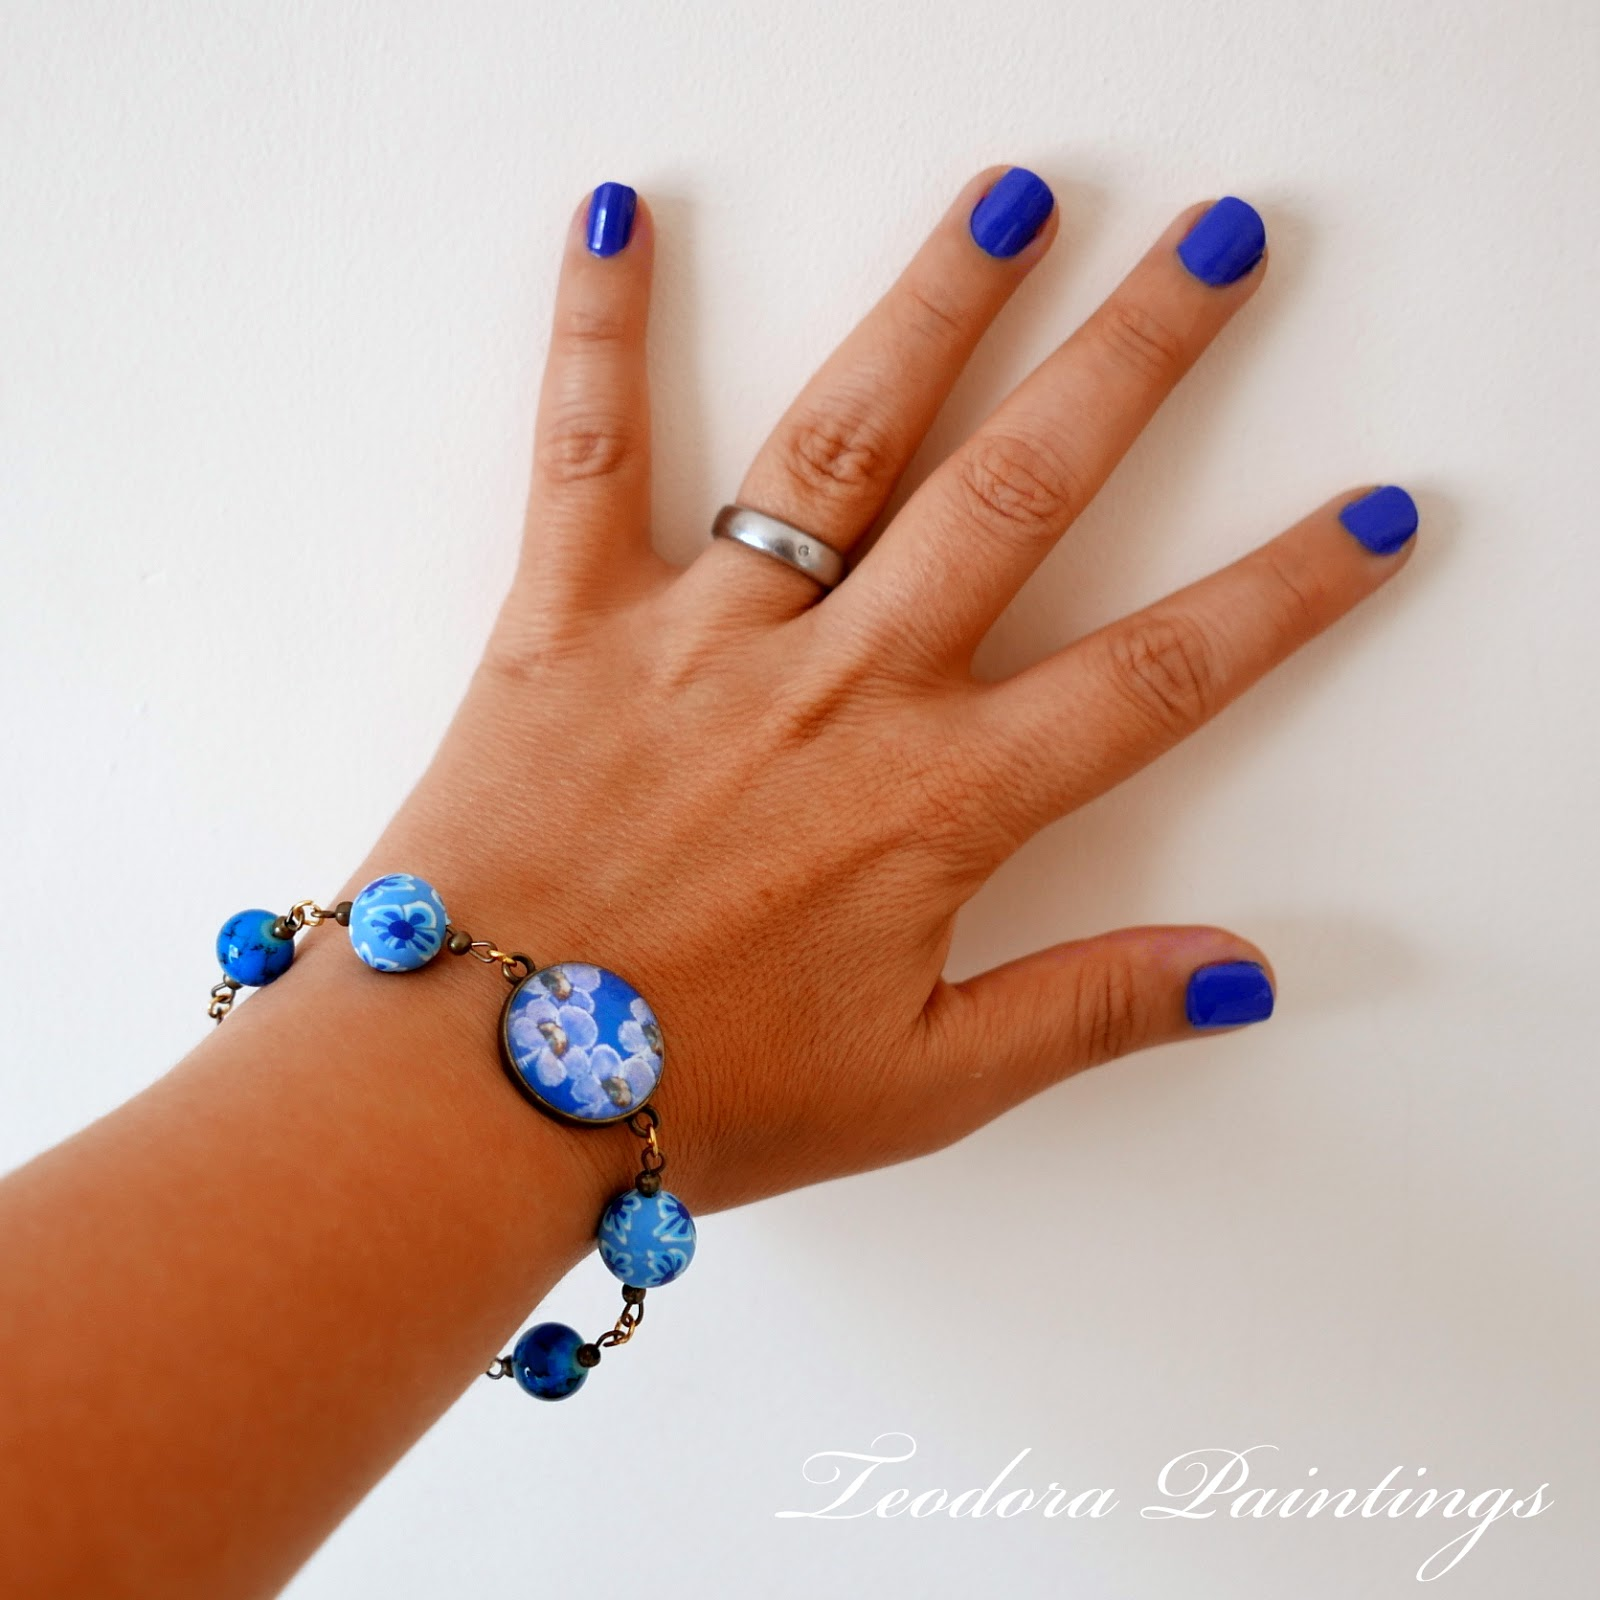 Teodora Paintings Colourful Nails For Colourful Bracelets